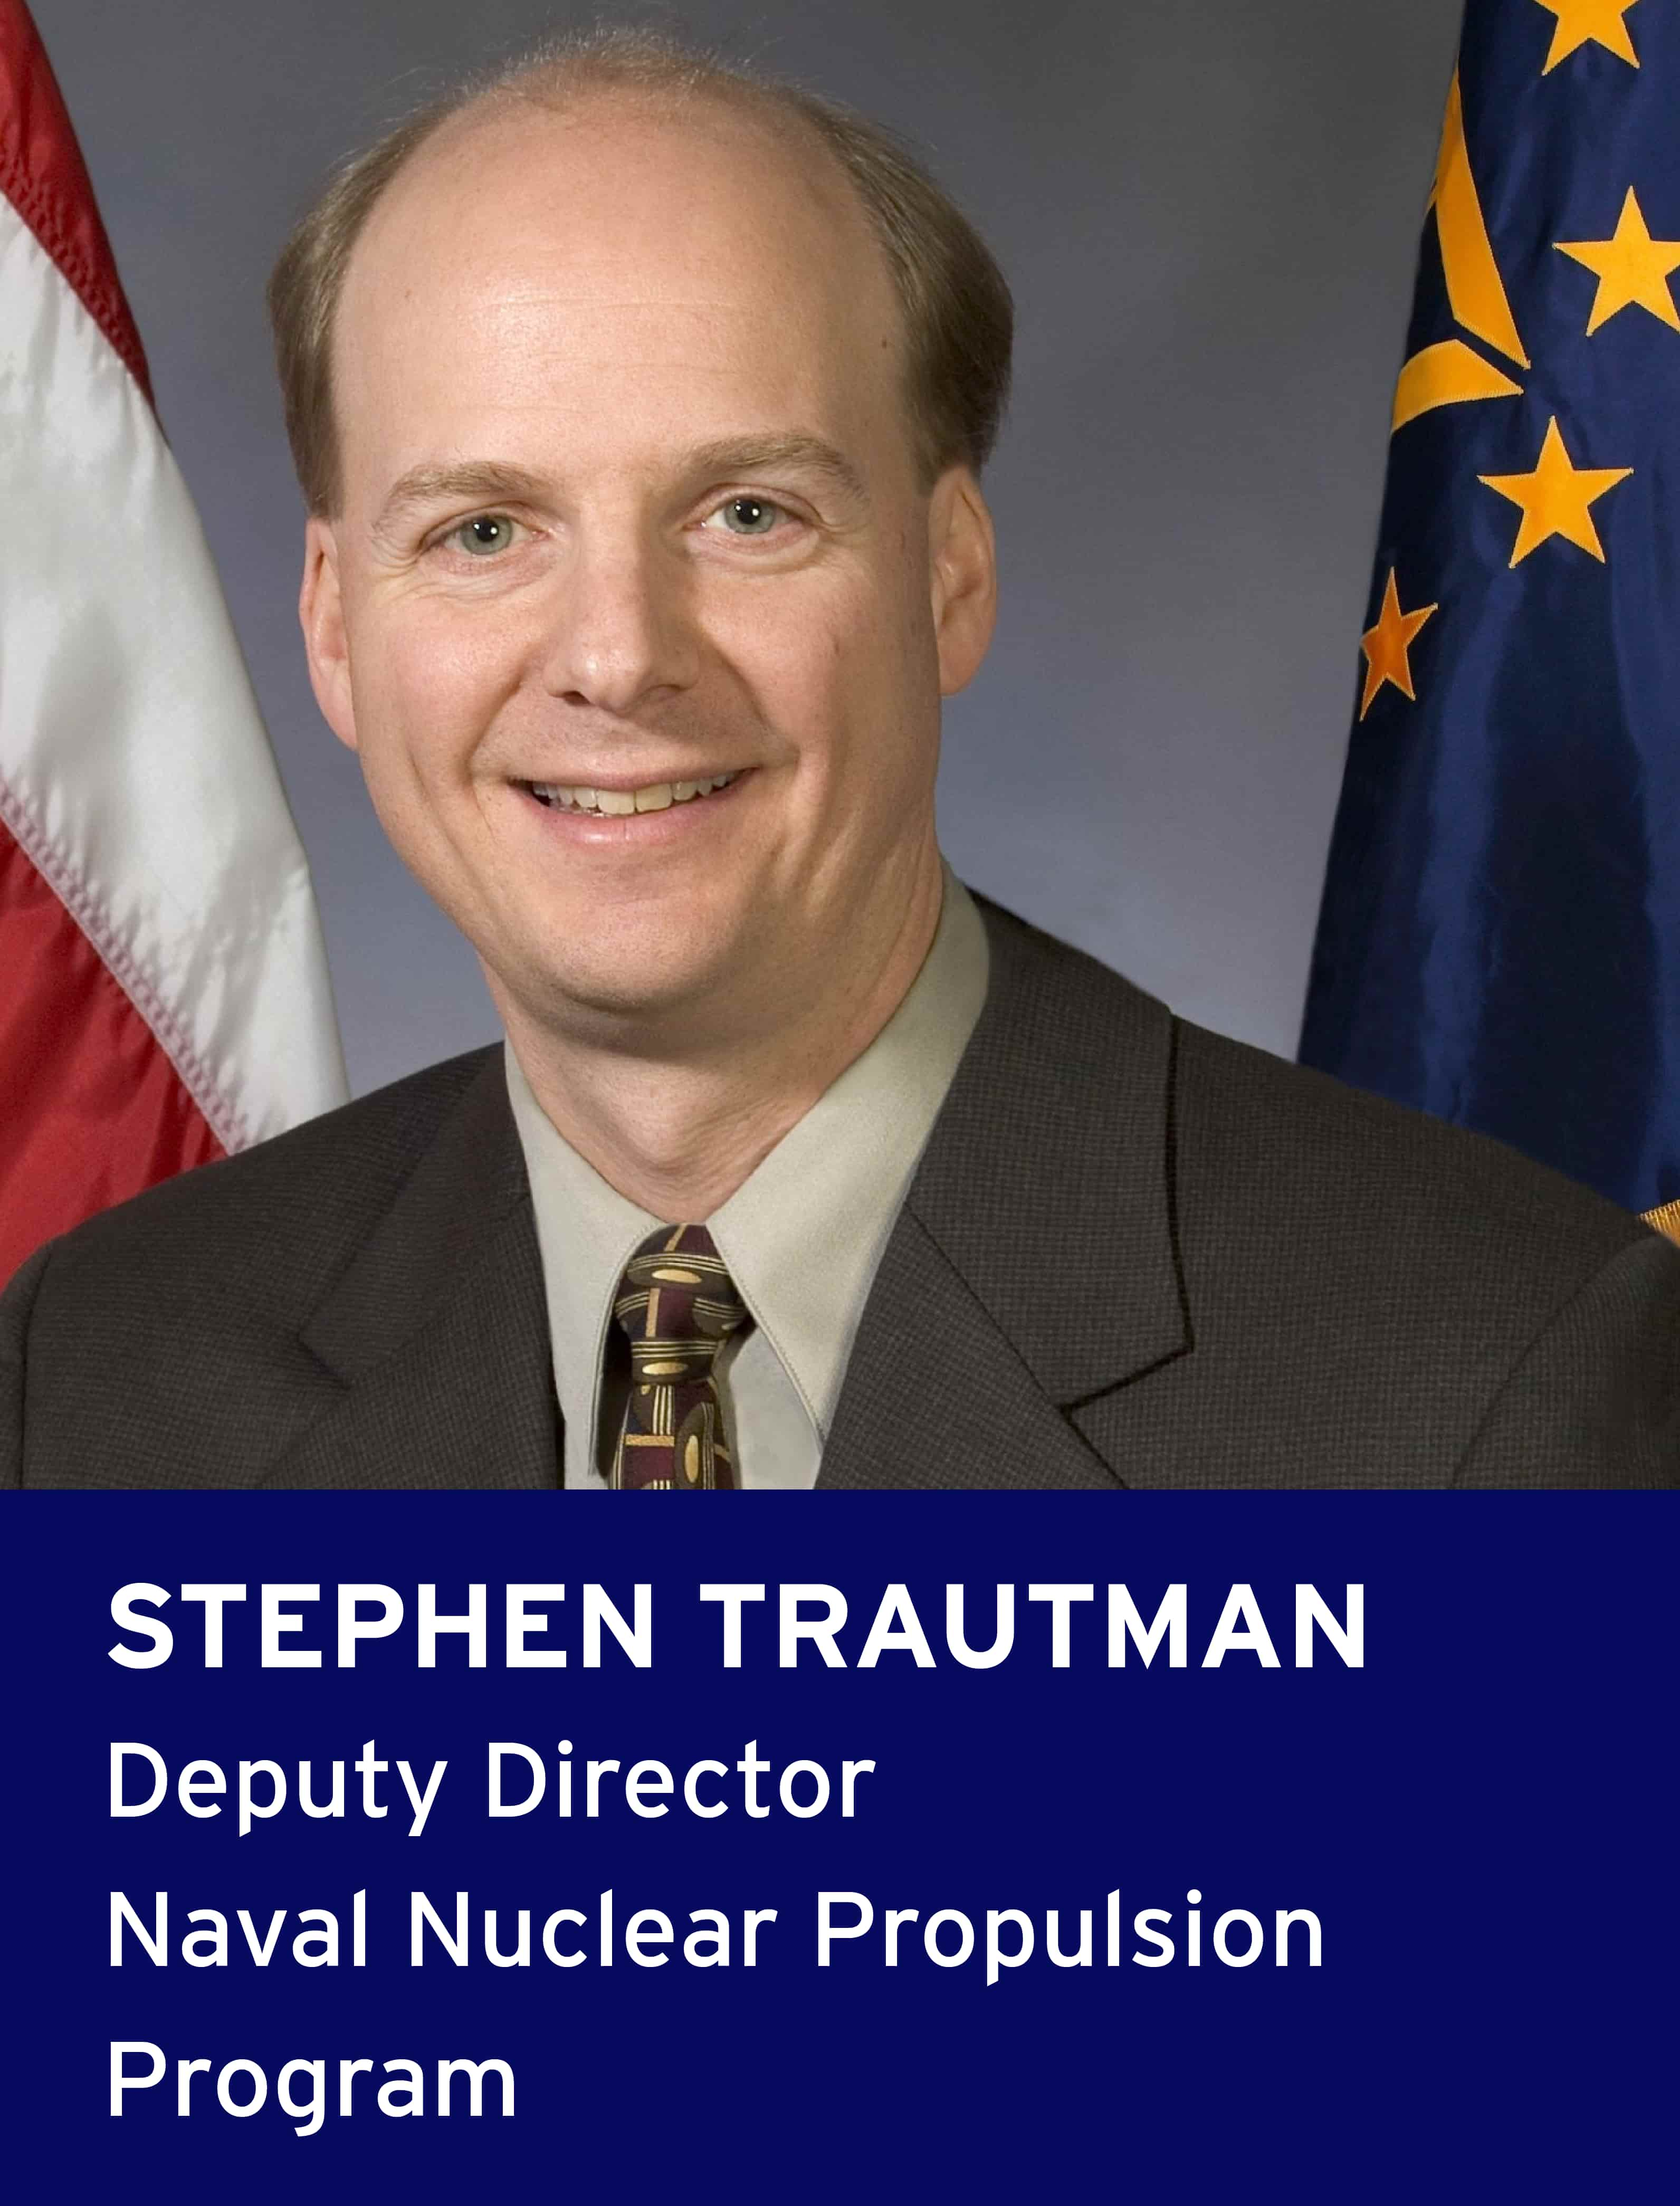 Stephen Trautman, Deputy Director, Naval Nuclear Propulsion Program